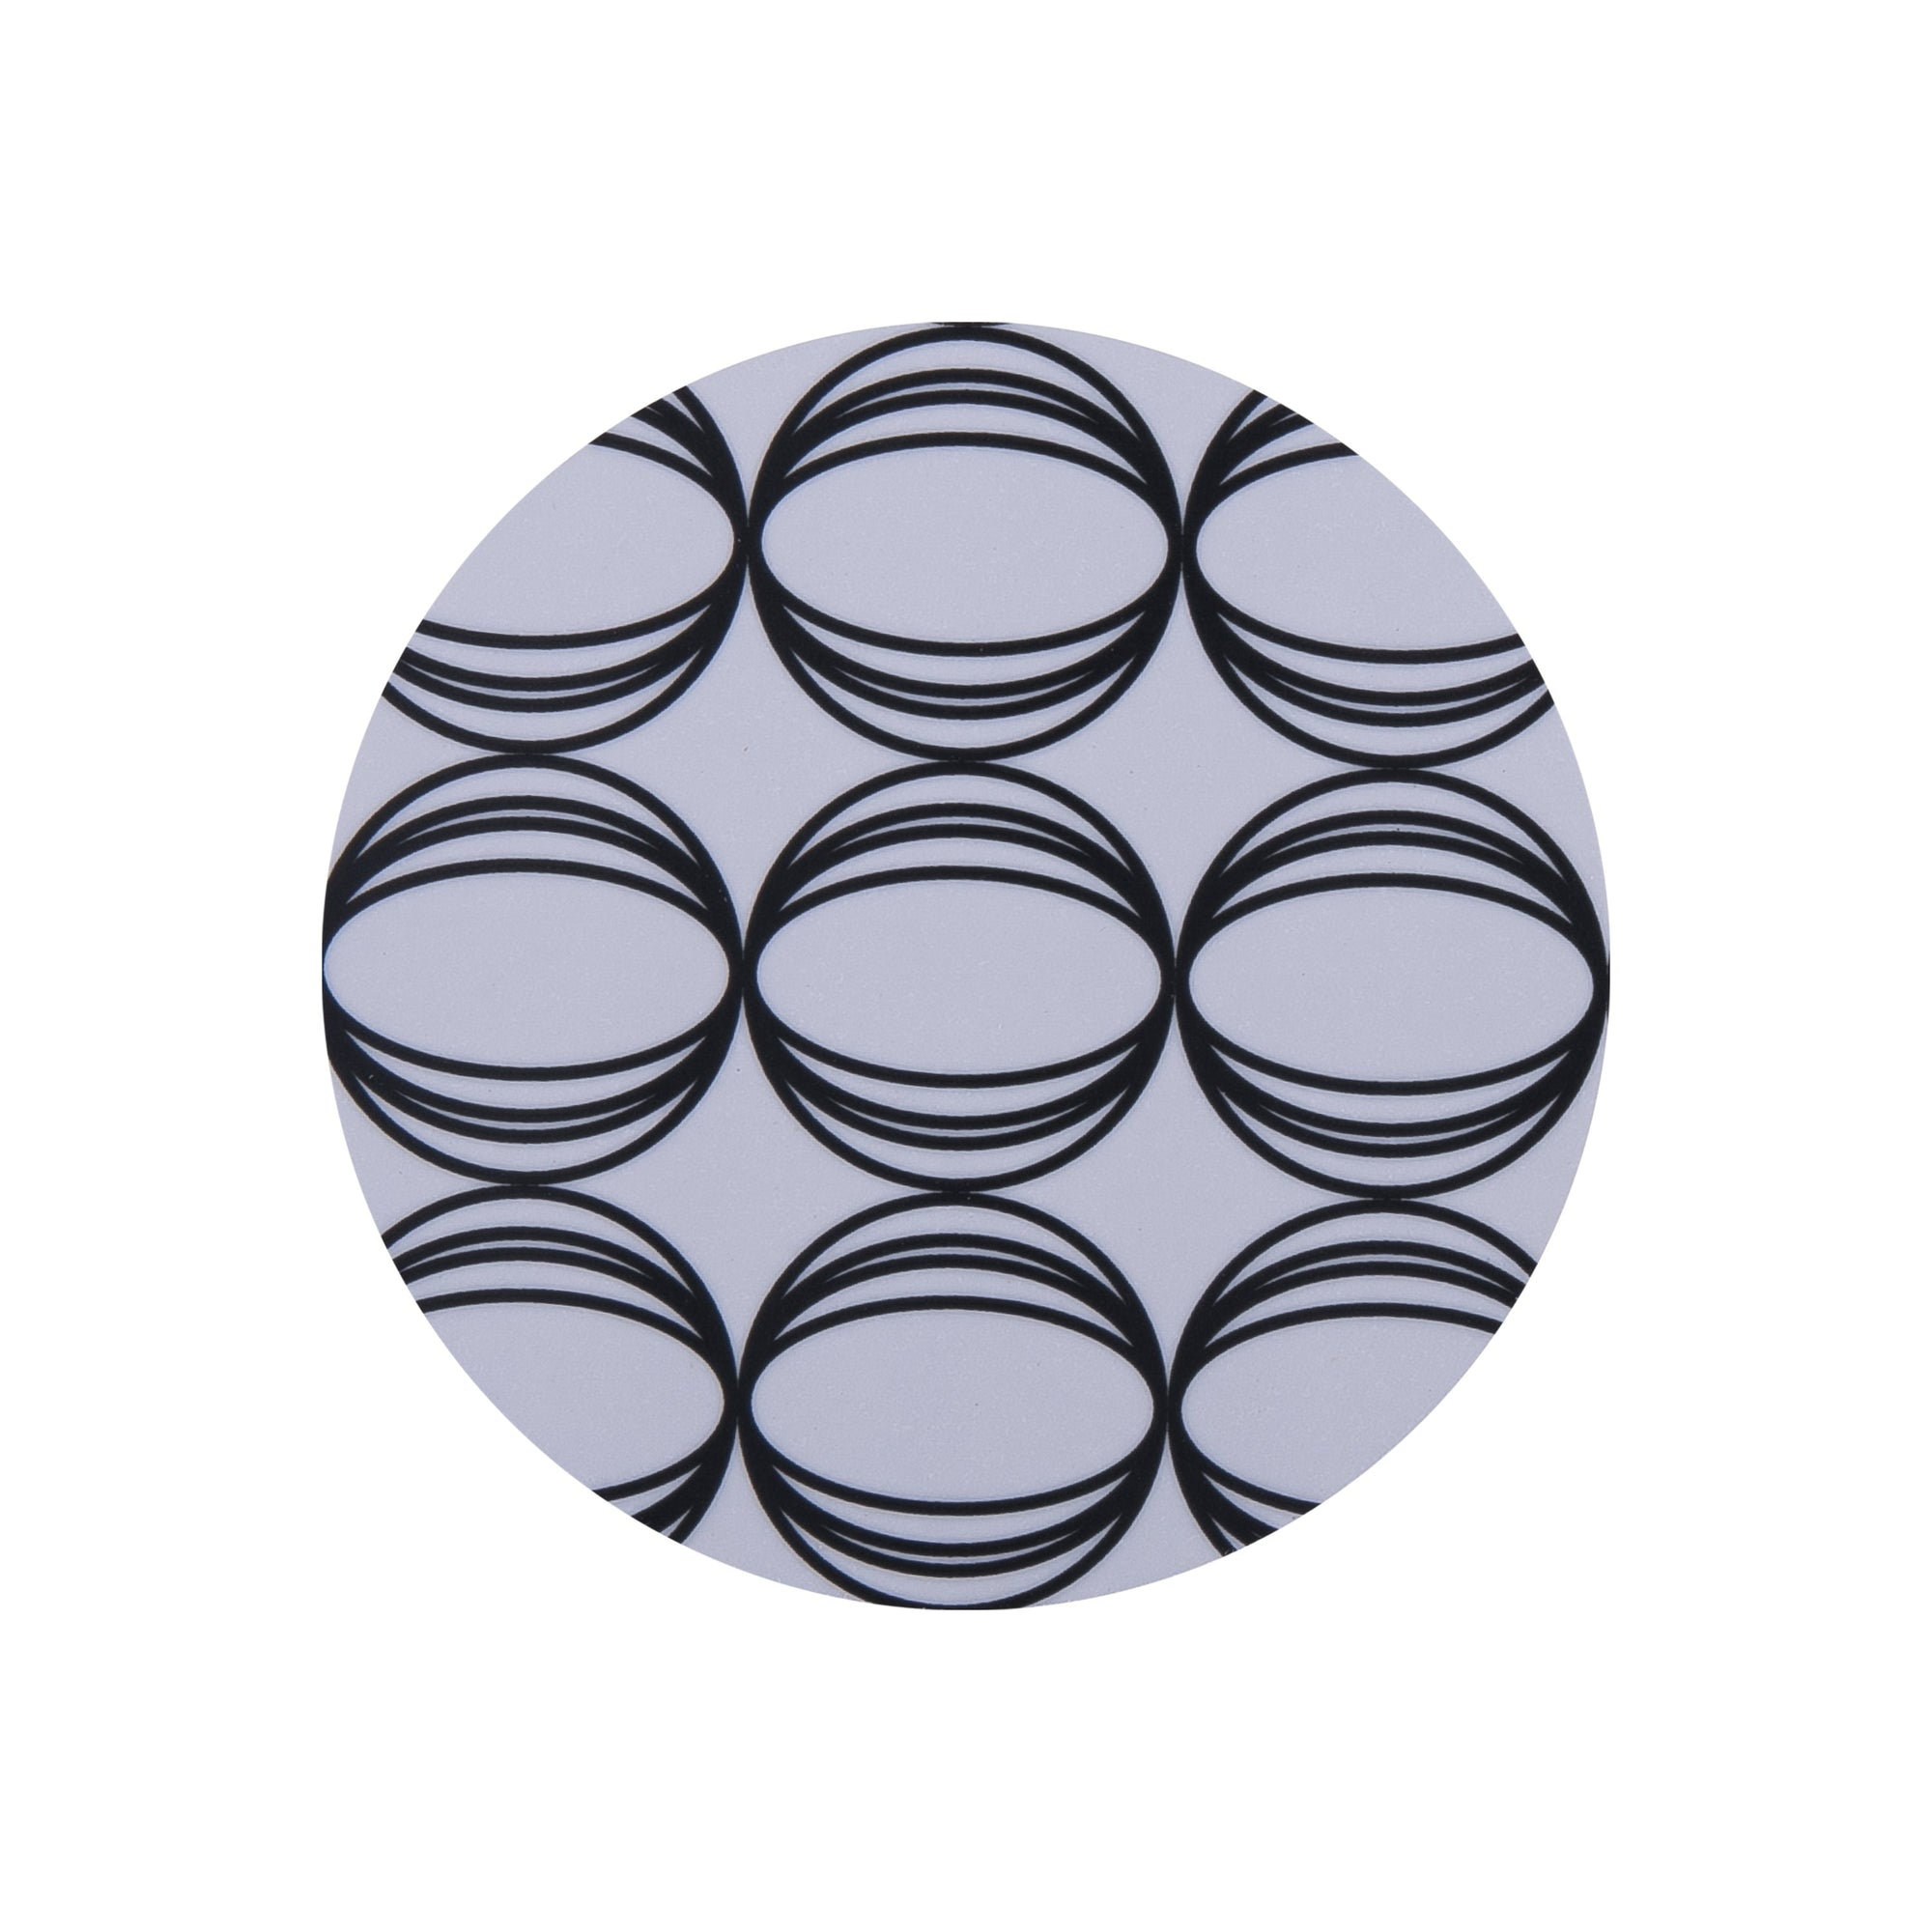 Oval Round Coaster - MAiK sustainably sourced, ethically produced.